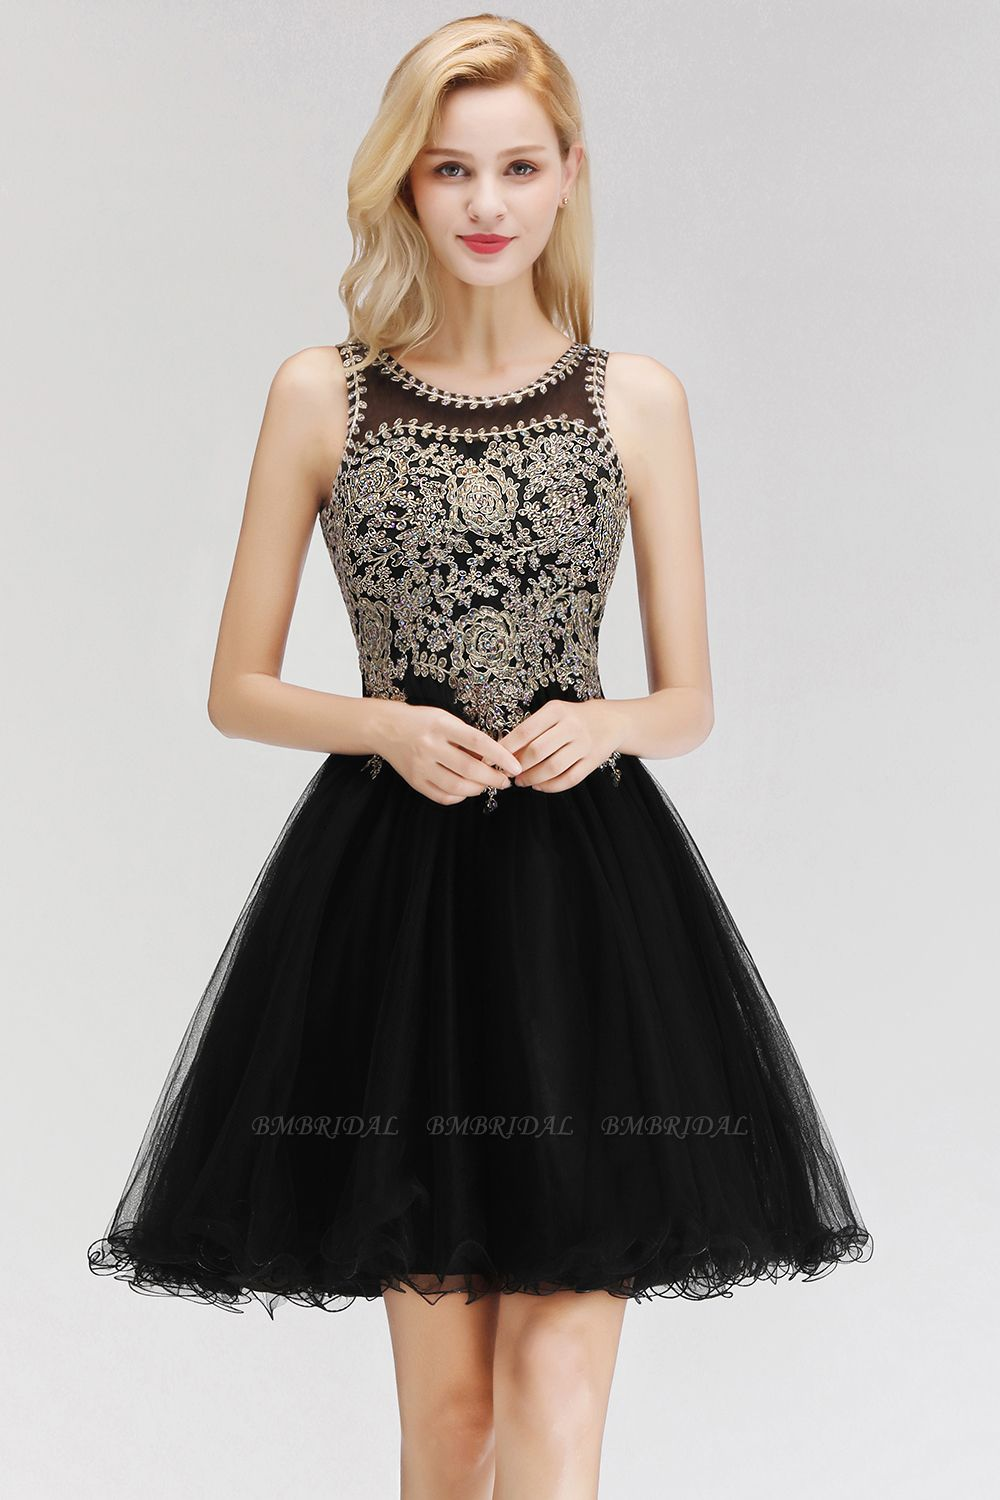 BMbridal A-line Tulle Lace Homecoming Dress with Beadings